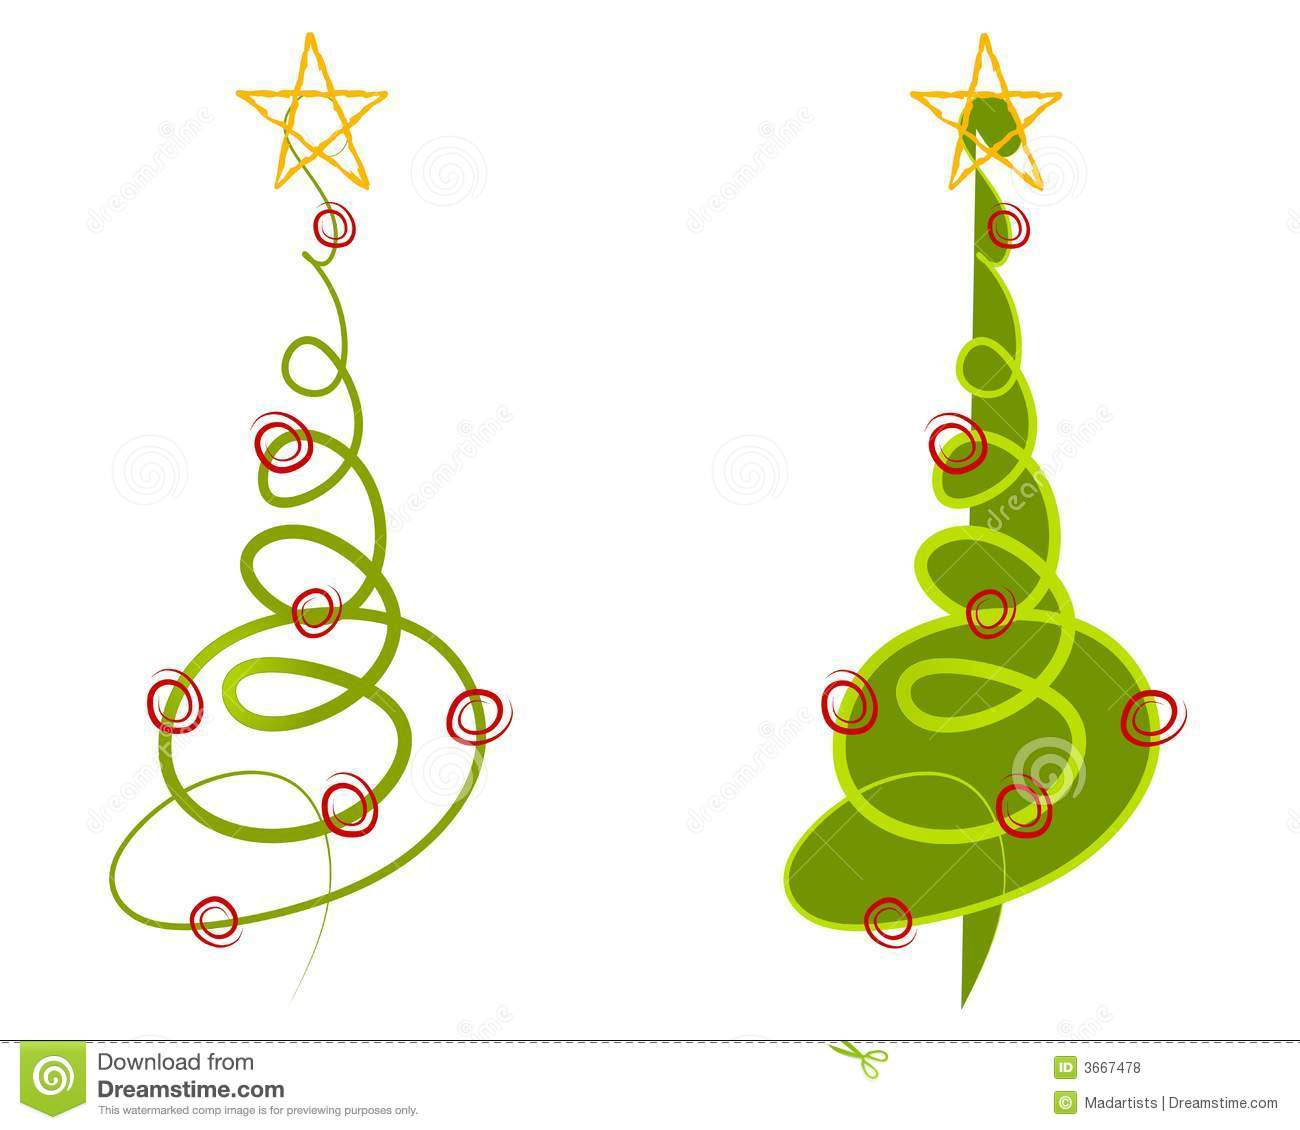 Clip art illustration of your choice of 2 abstract christmas trees